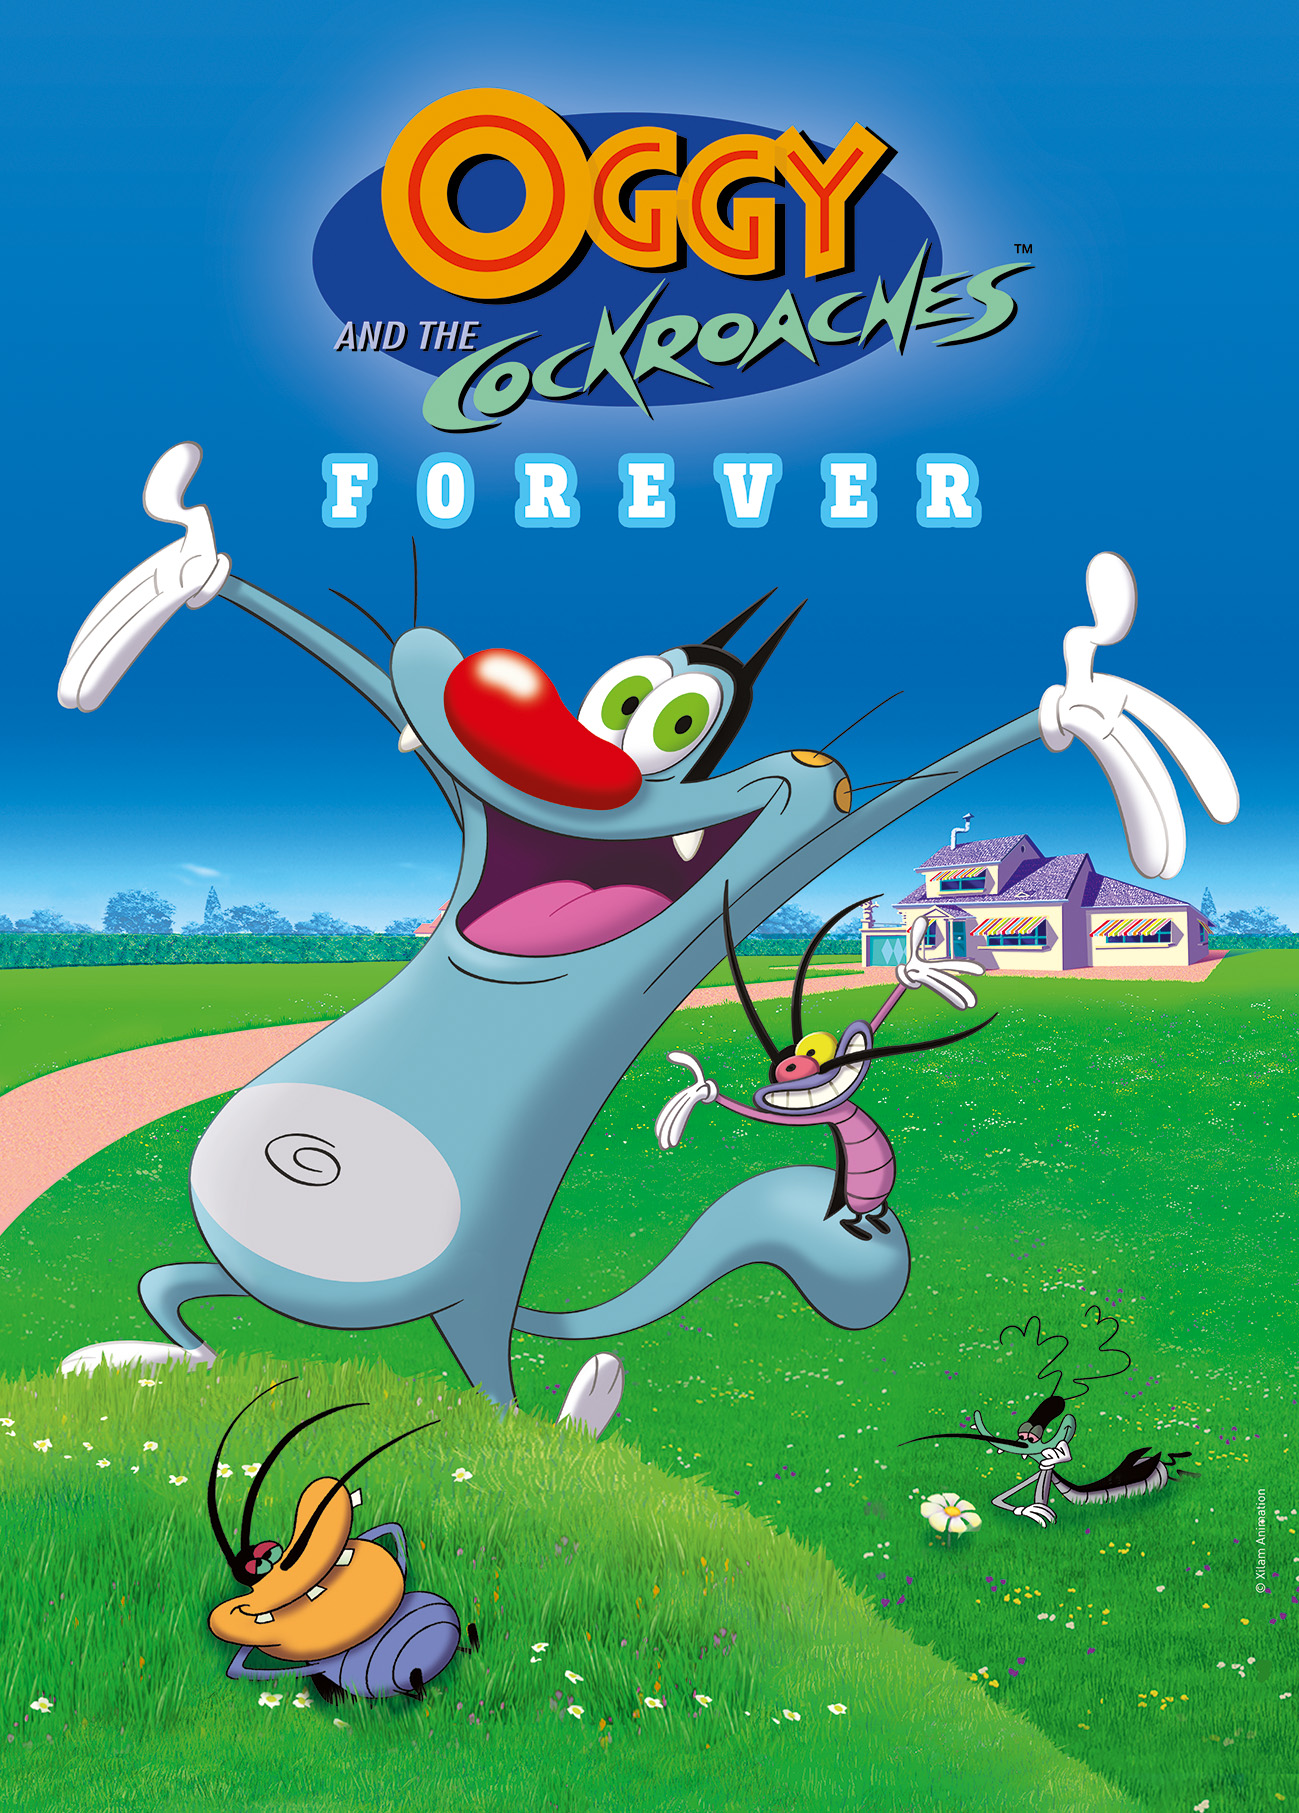 oggy and the cockroaches hindi episodes torrent